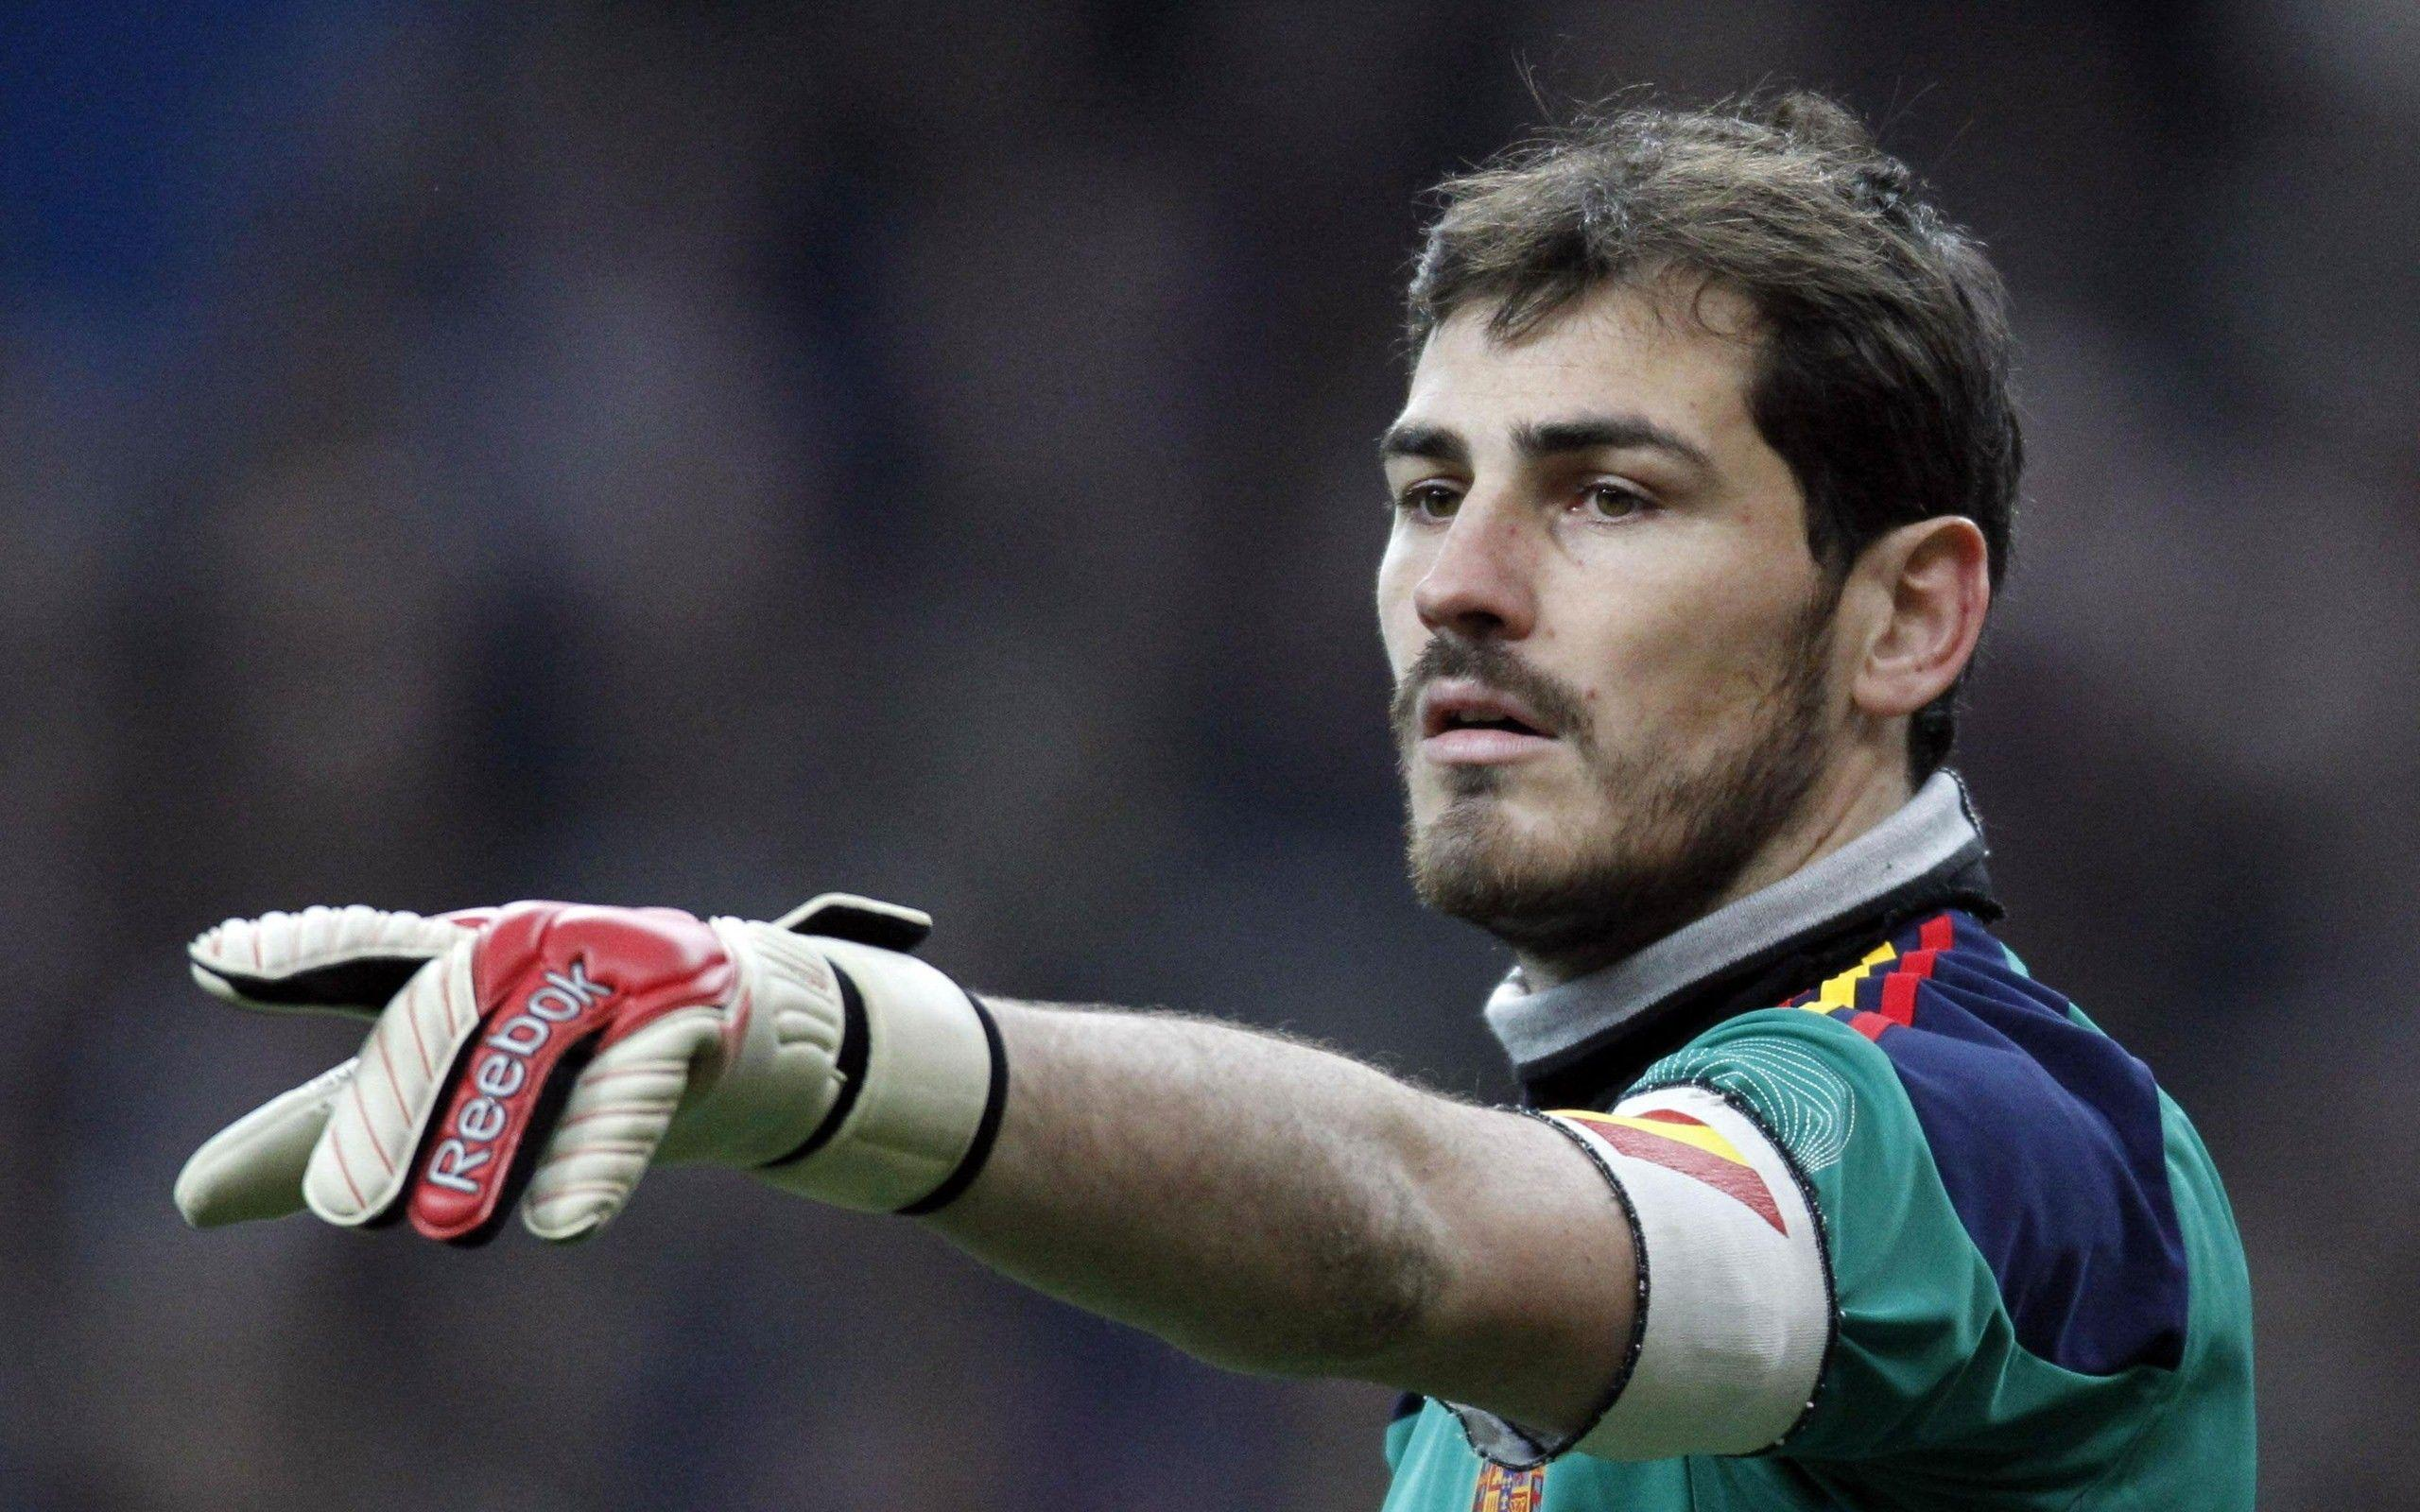 iker casillas HD Photos | Desktop Backgrounds Wallpapers Image ...